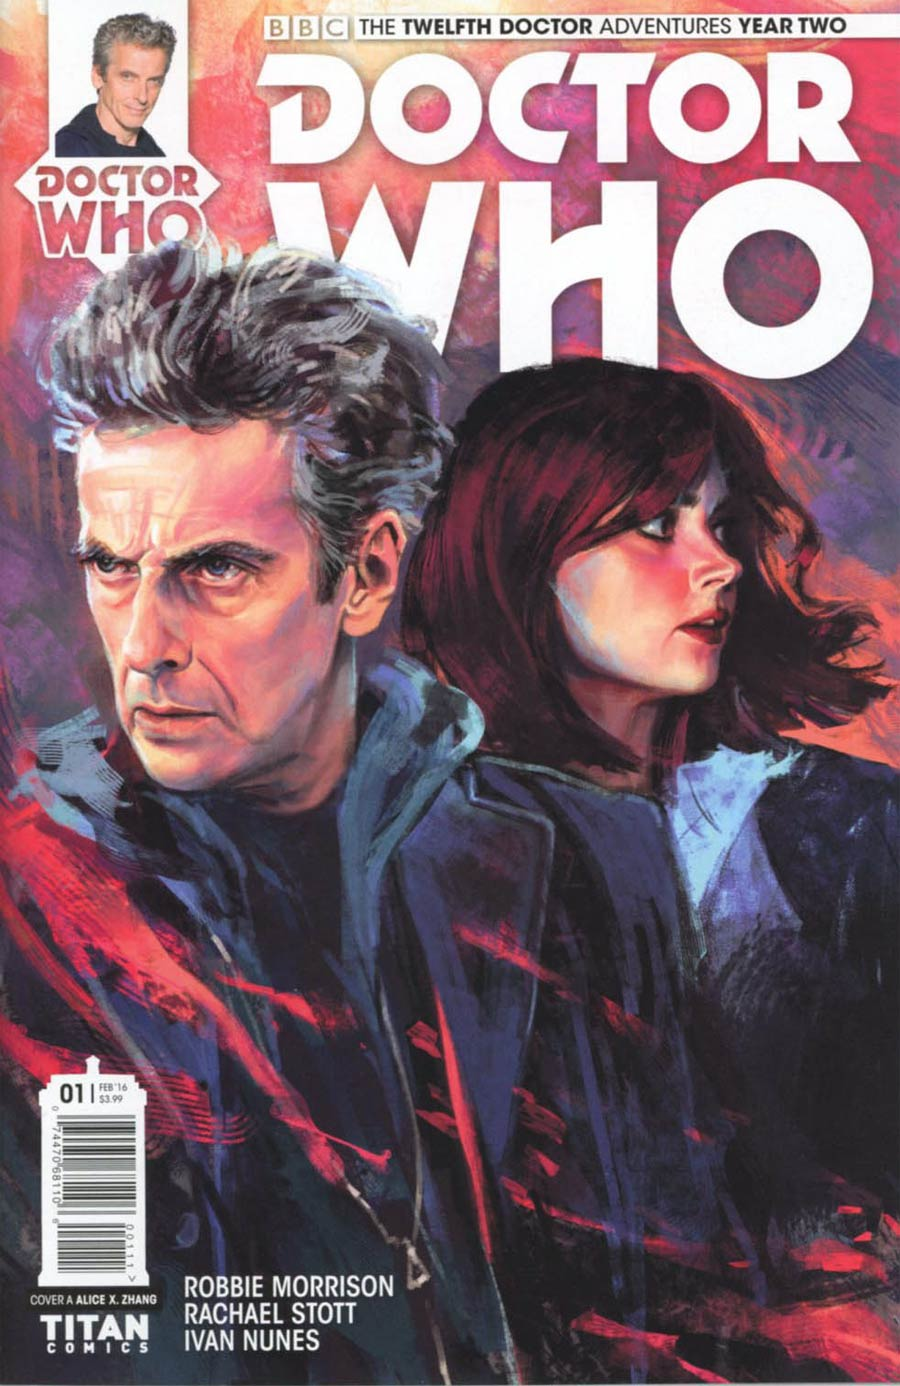 Doctor Who 12th Doctor Year Two #1 Cover A Regular Alice X Zhang Cover